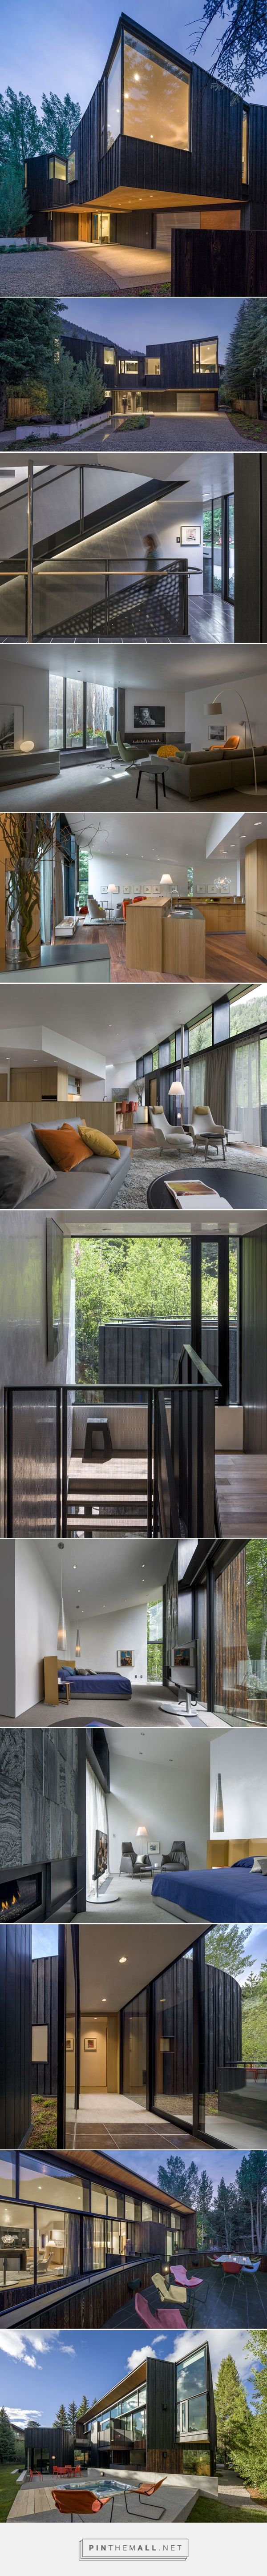 will bruder architects builds modern mountain retreat in aspen - created via http://pinthemall.net